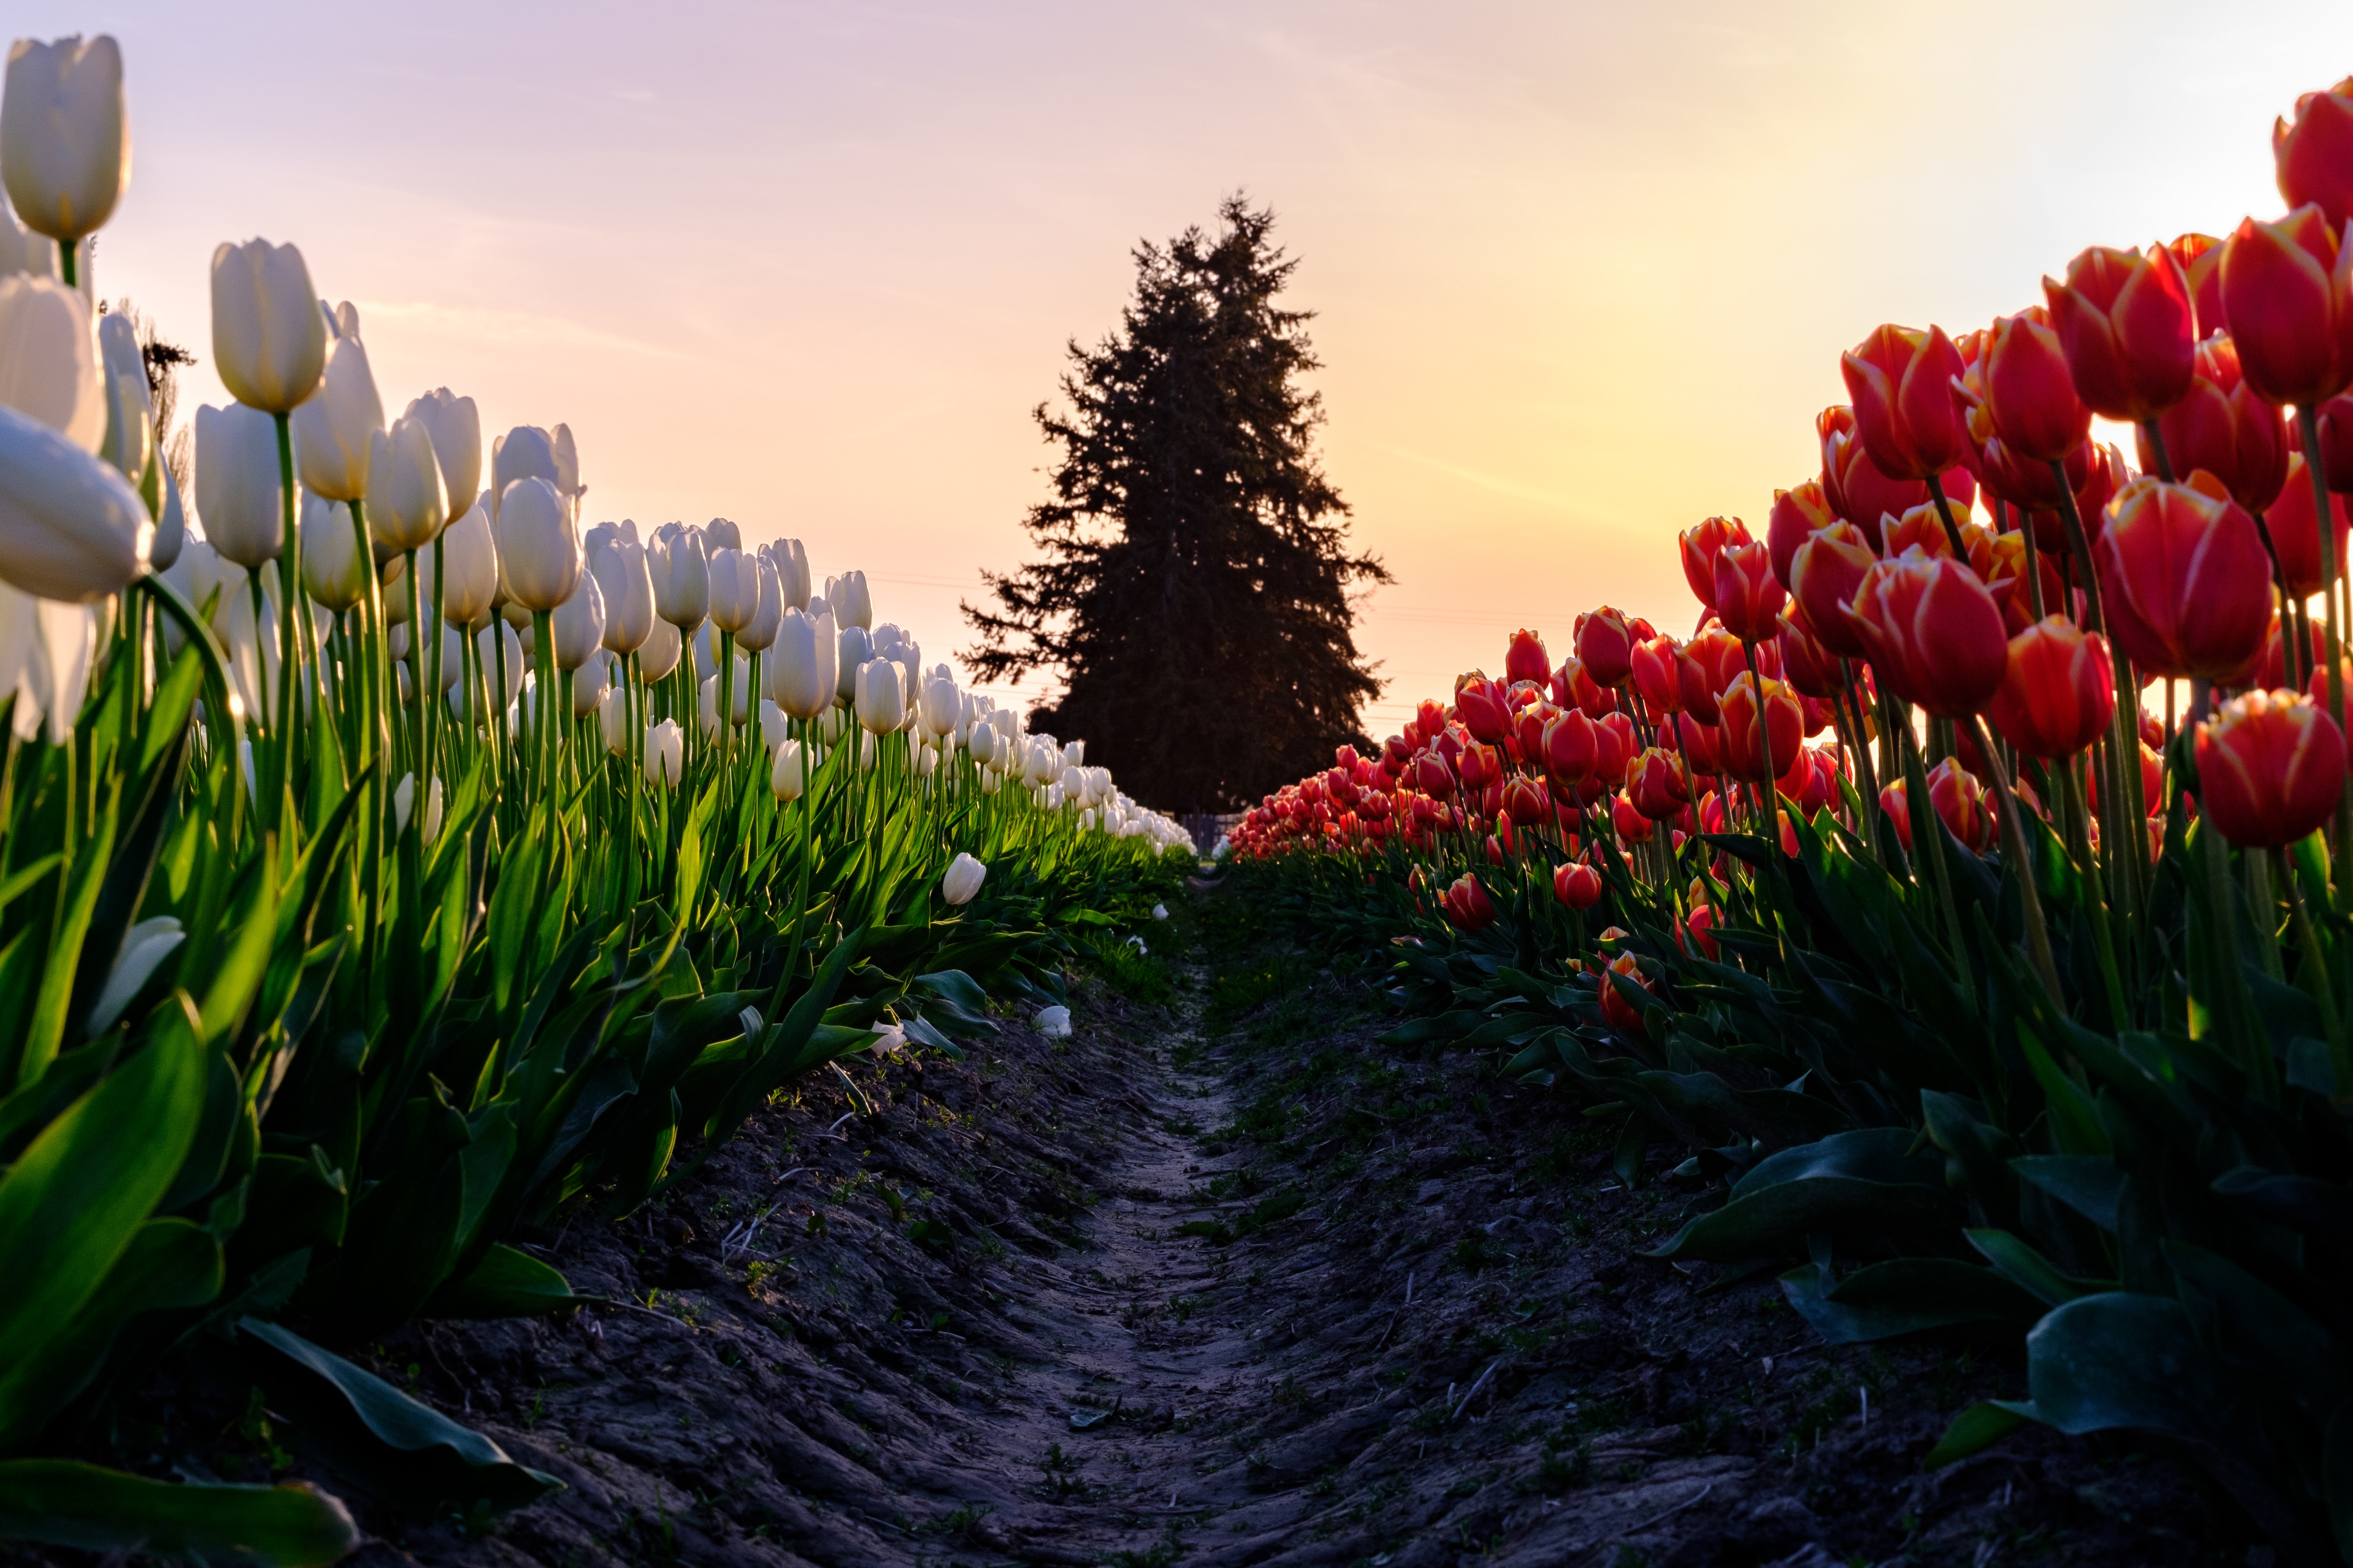 pathway between red and white flowers